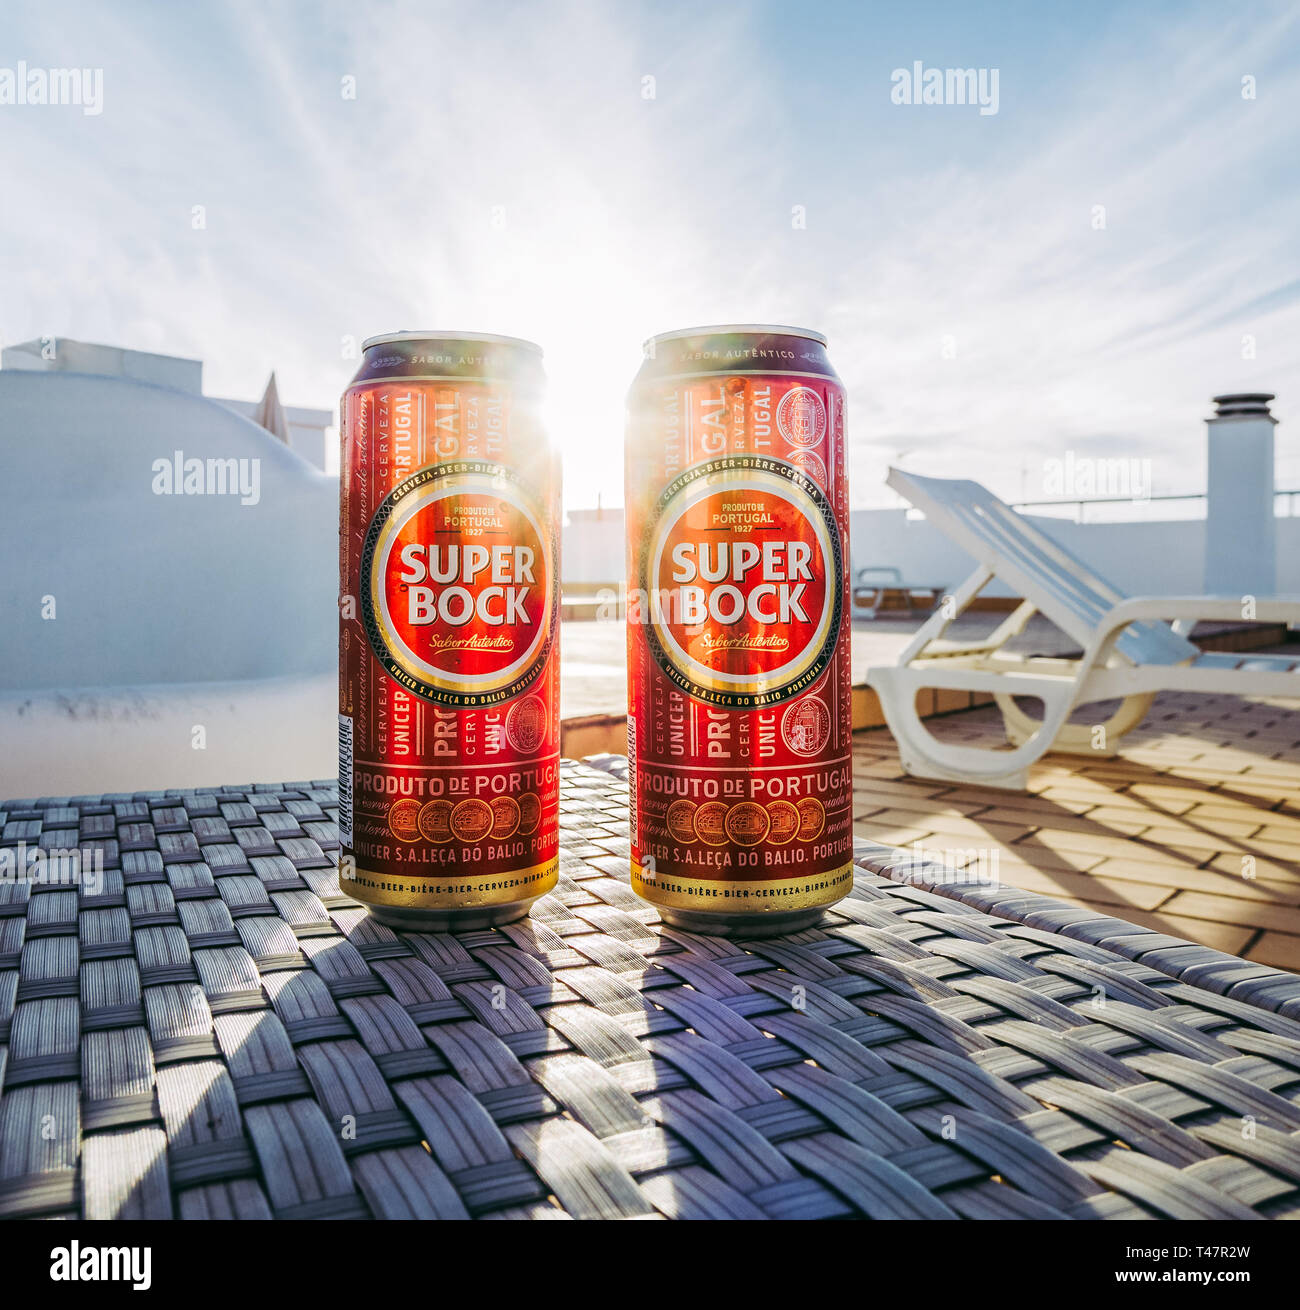 Lisbon, Portugal - August 1, 2017: Two Super Bock beer cans with sun shining between them. - Stock Image